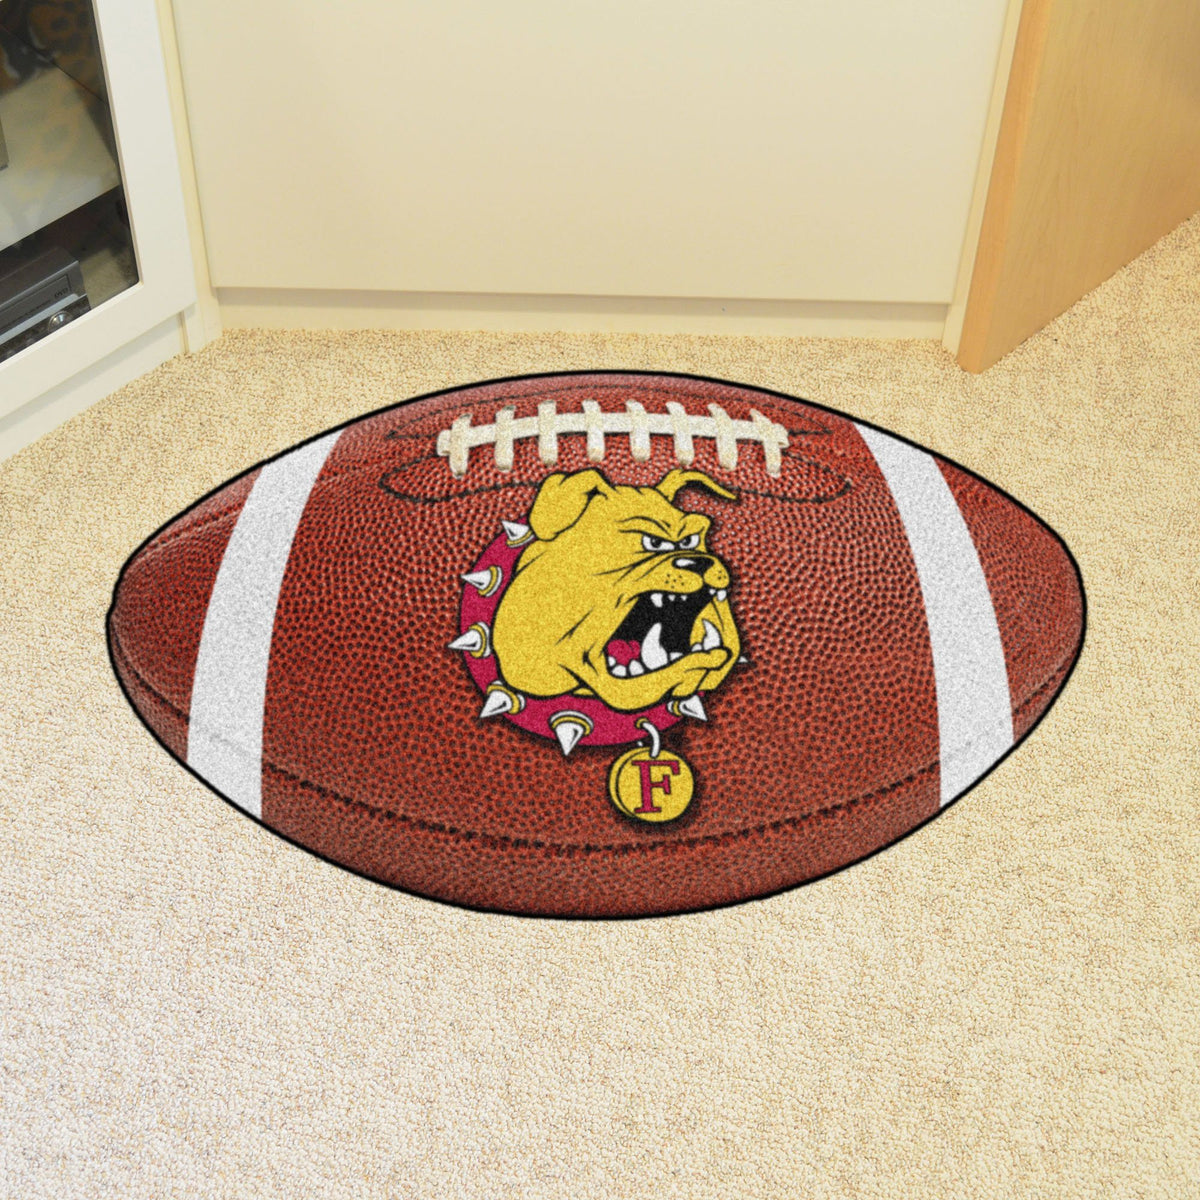 Collegiate - Football Mat: A - K Collegiate Mats, Rectangular Mats, Football Mat, Collegiate, Home Fan Mats Ferris State